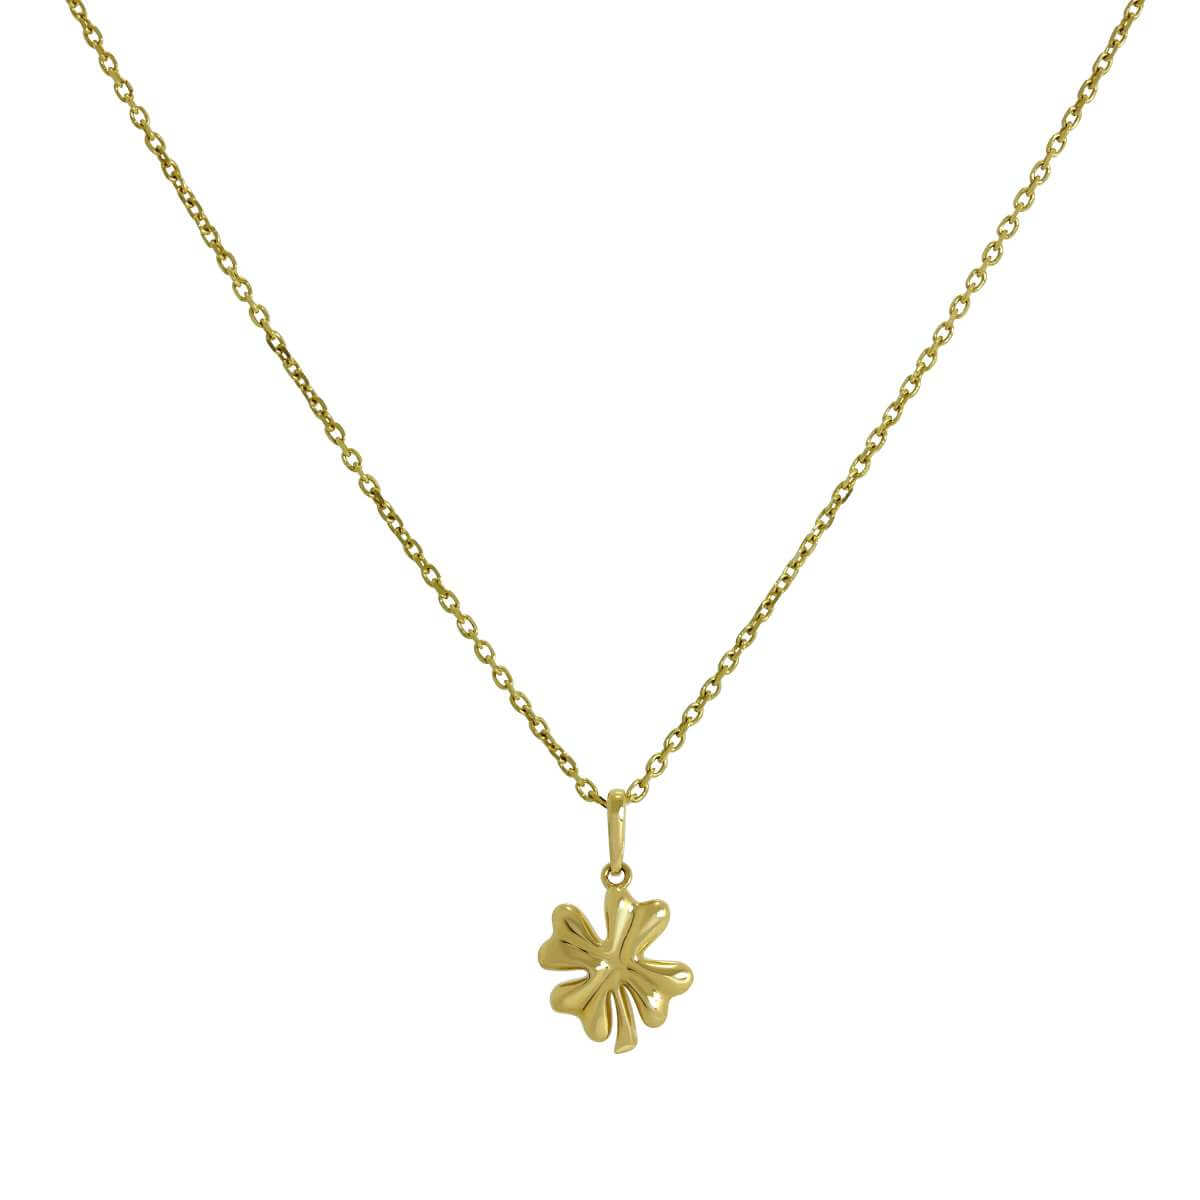 9ct Gold Four Leaf Clover Pendant on Chain 16 - 20 Inches